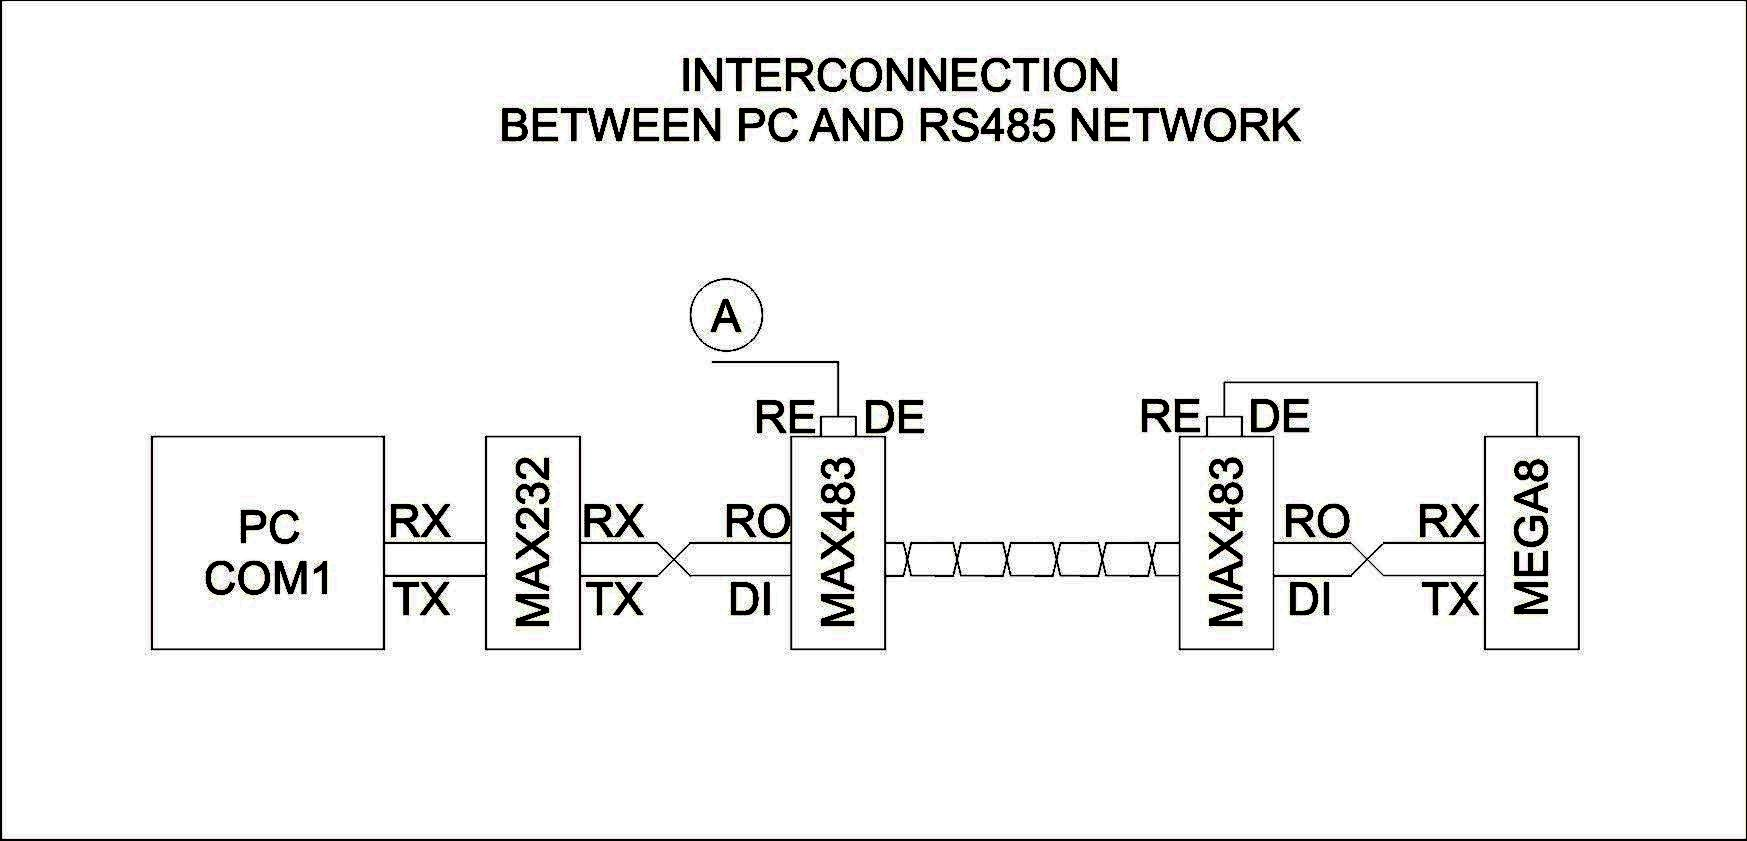 rs232 to ethernet wiring diagram connection of pc    rs232    with rs485 network avr freaks  connection of pc    rs232    with rs485 network avr freaks